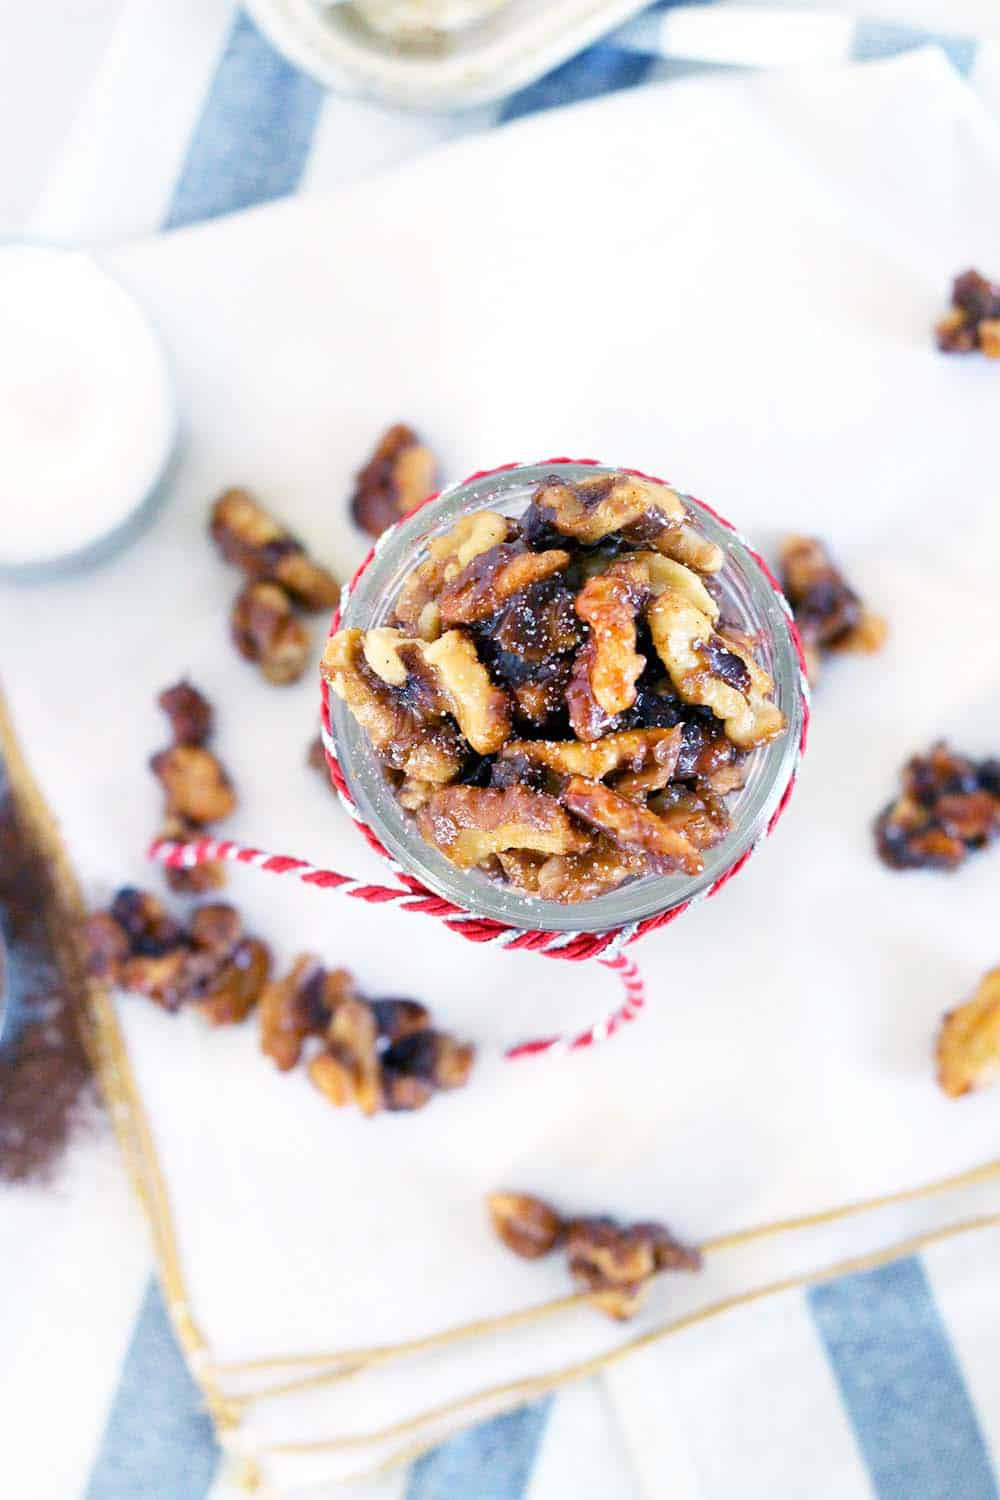 This candied walnut recipe takes only 5 minutes and 5 ingredients! Eat as a sweet treat, toss with a salad, or serve on a cheese board. Perfect as a holiday gift packaged in mason jars. | www.bowlofdelicious.com